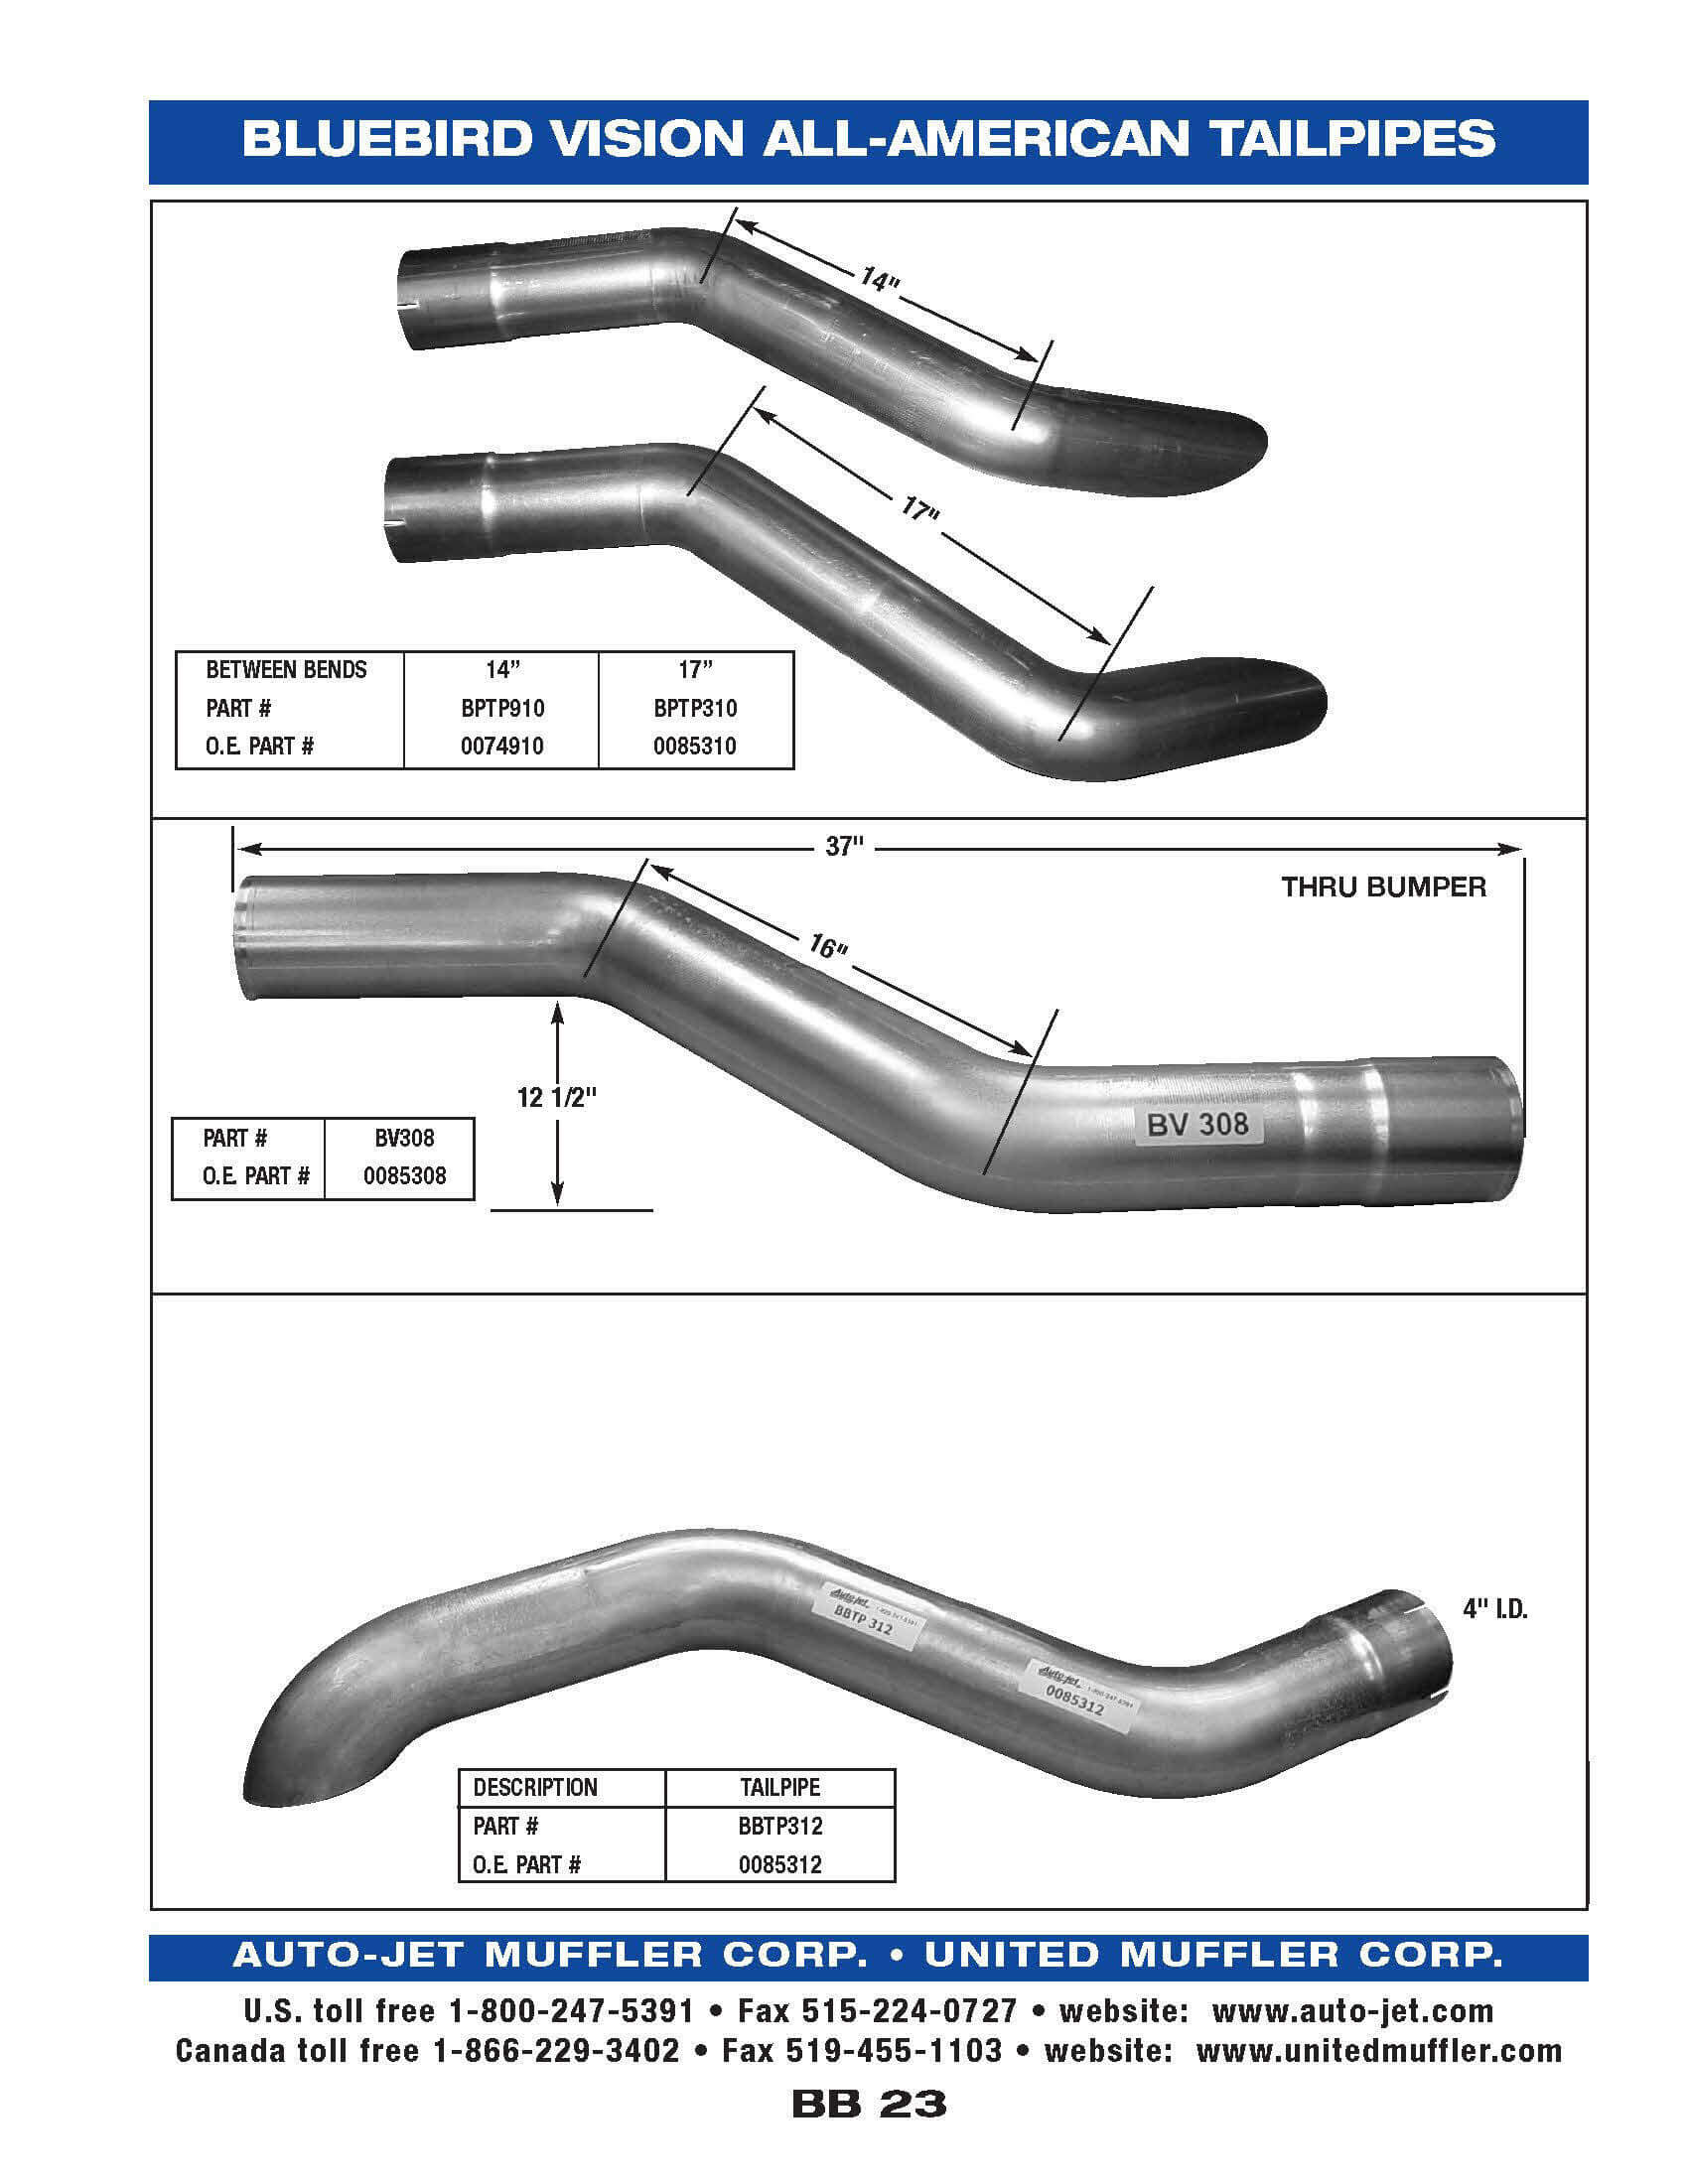 Bluebird United Muffler Corporation Exhaust System Diagram Related Keywords Suggestions Bb 23 1987 91 All American 83 Litre Cummins 4